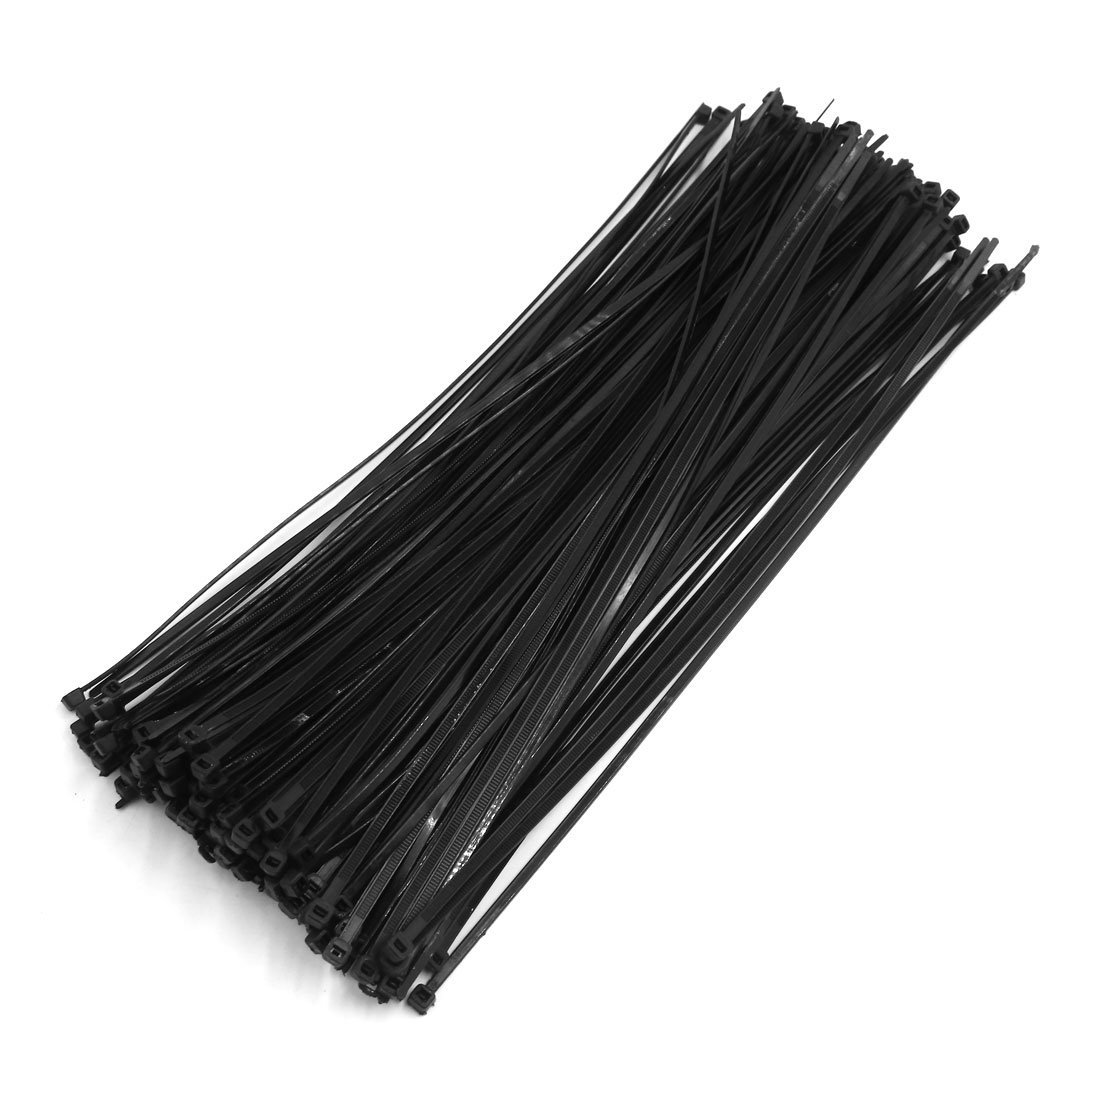 uxcell 5mm x 350mm Black Nylon Winged End Push Mount Electrical Cable Ties 250Pcs